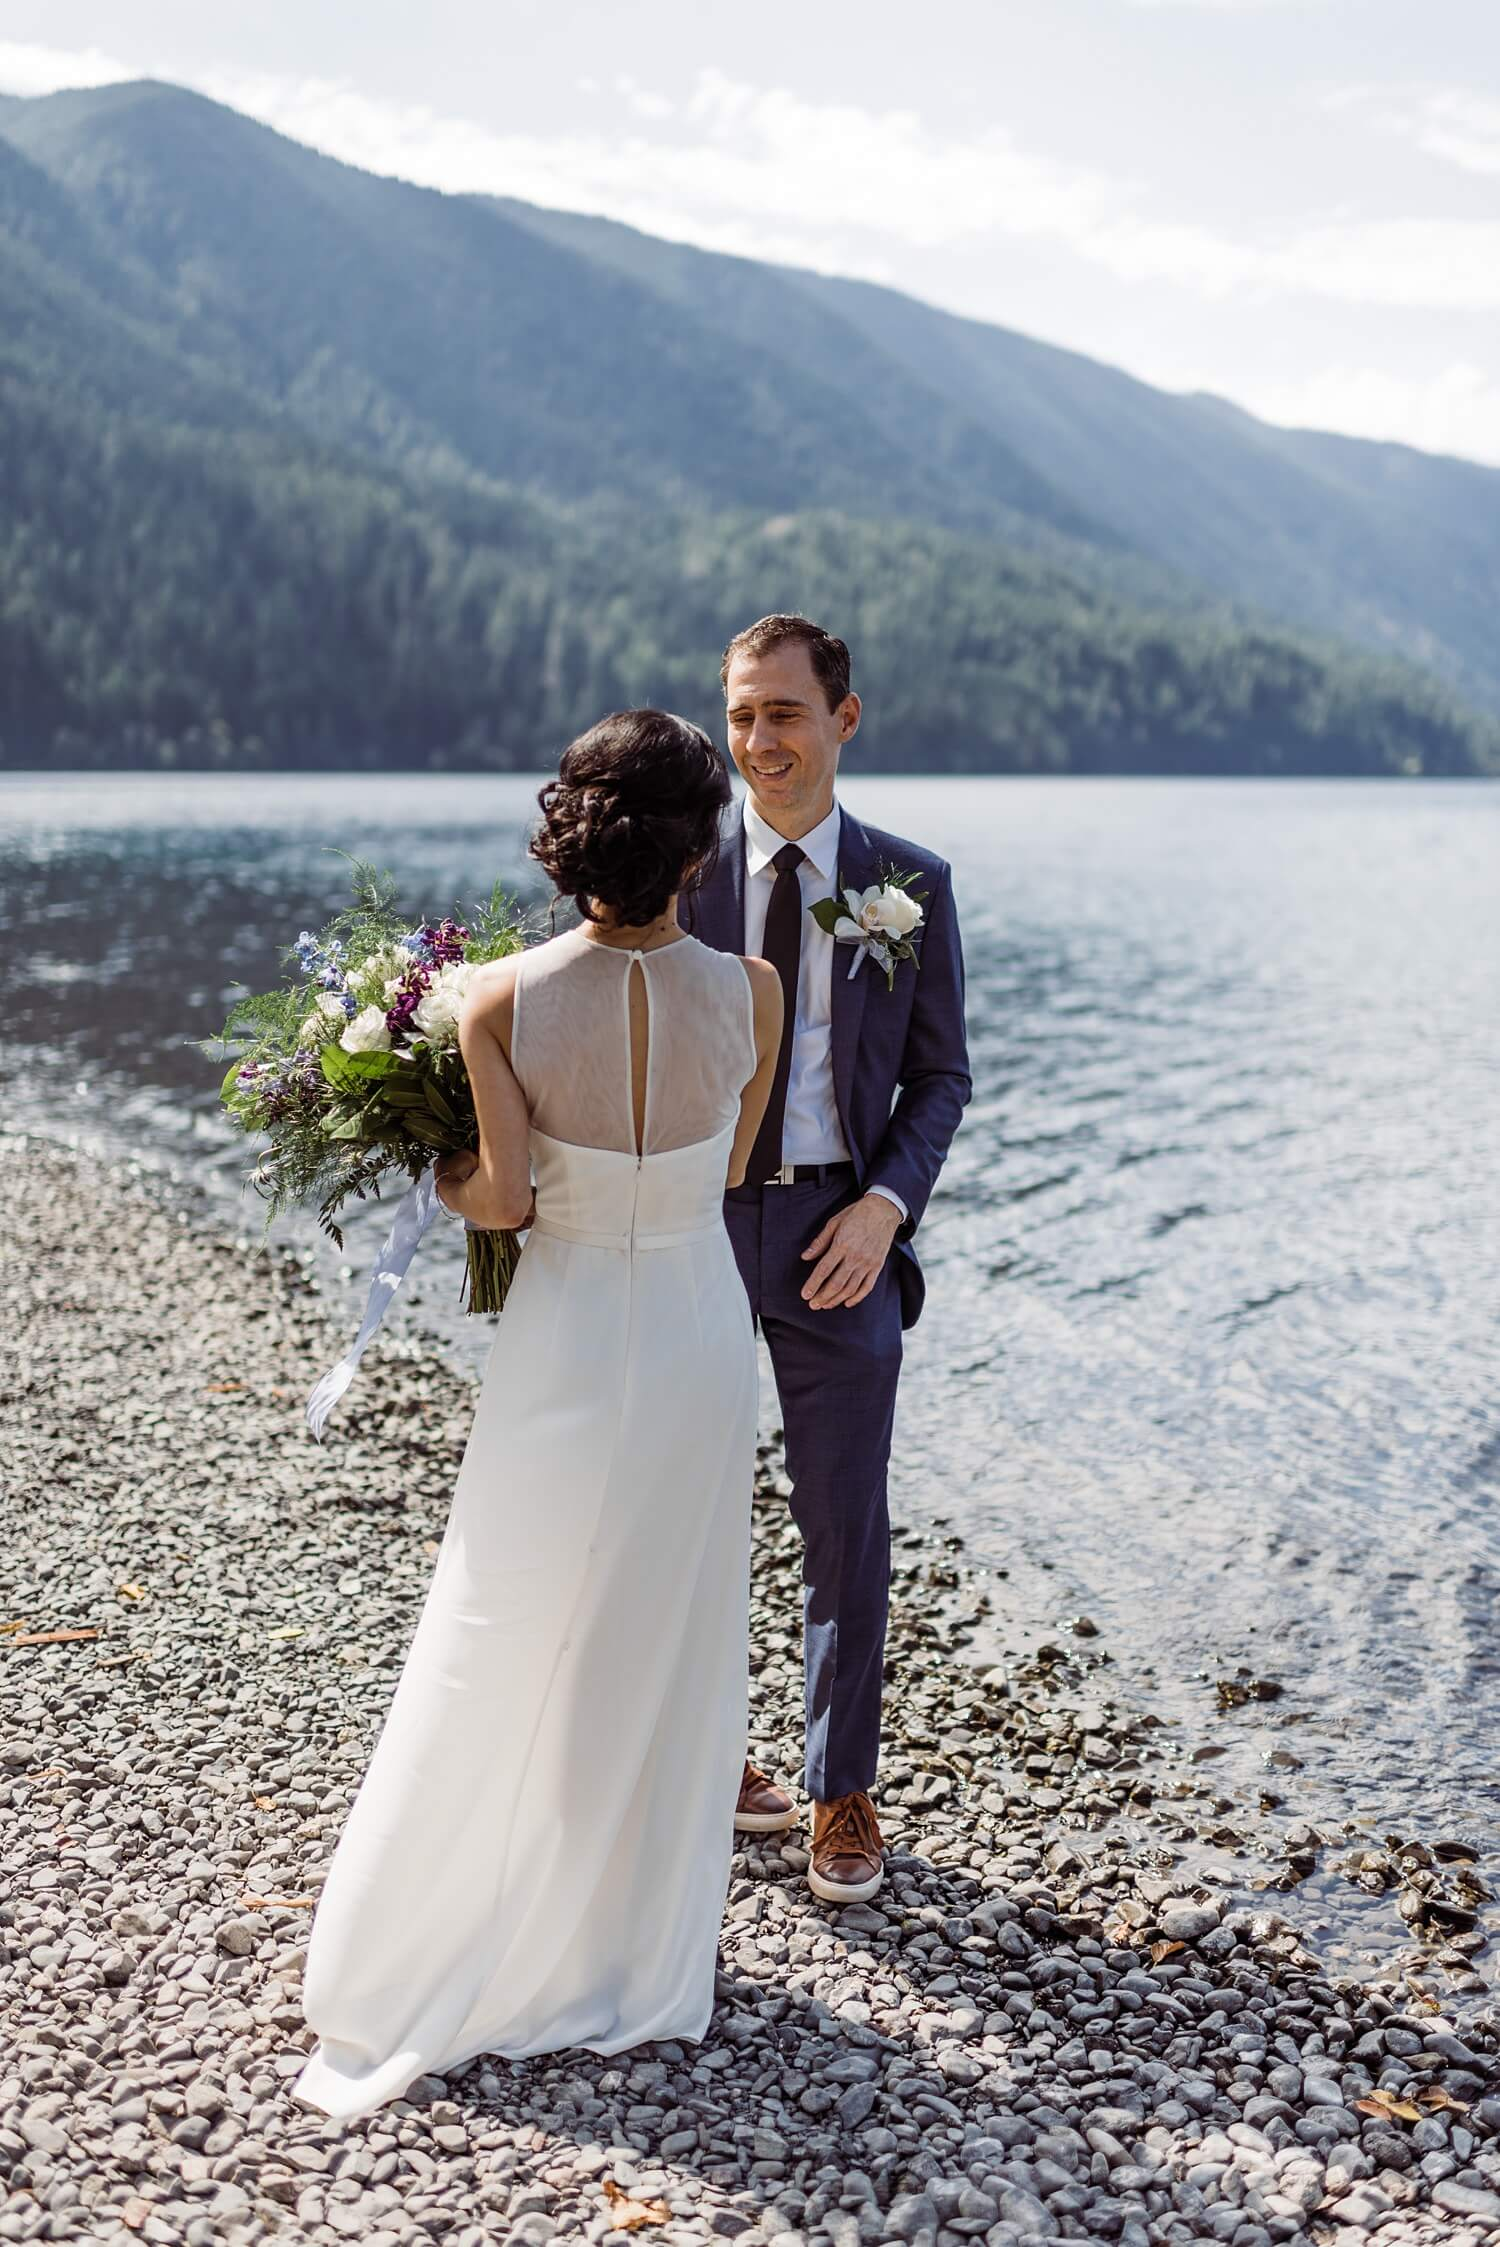 Cape Flattery,Cape Flattery wedding,Lake Crescent,Washington photographer,adventure elopement photographer,cape flattery elopement,oregon elopement,washington elopement,